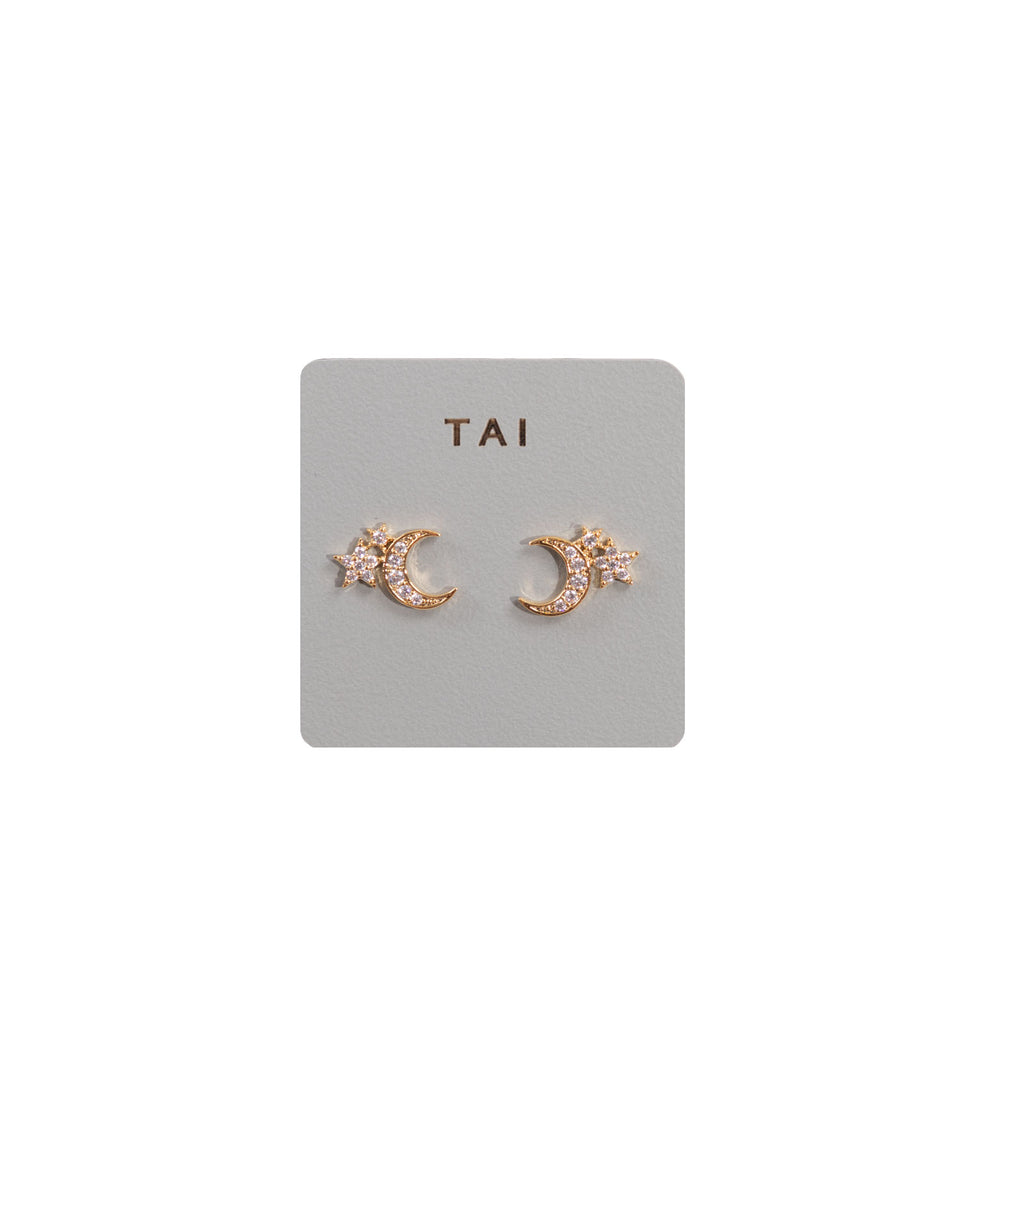 TAI Gold Moon and Star Stud Earrings